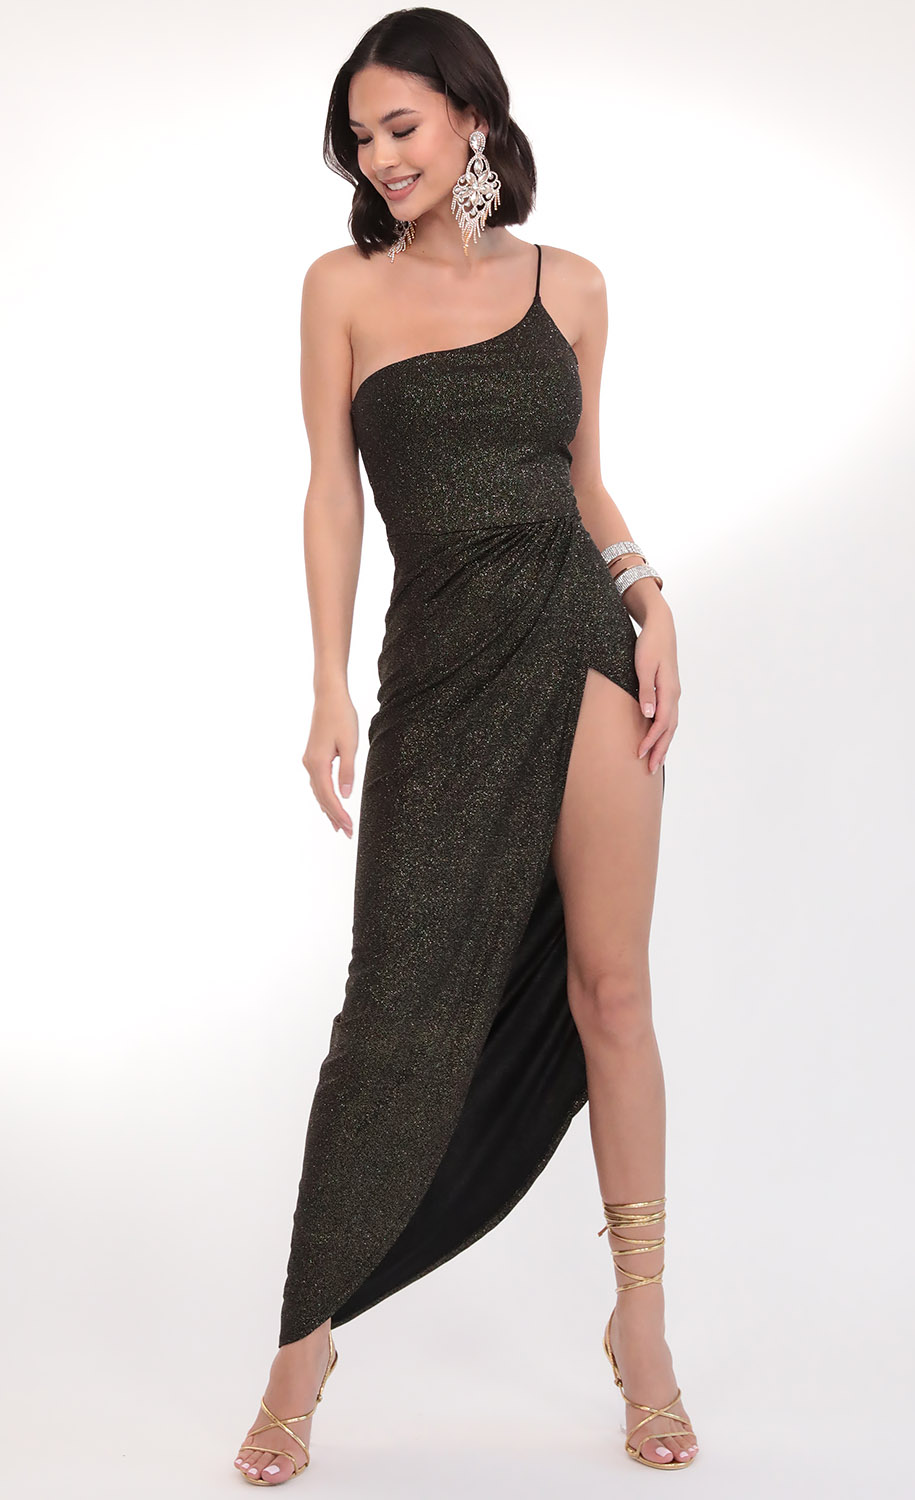 Milani Shoulder Maxi in Sparkling Black Gold